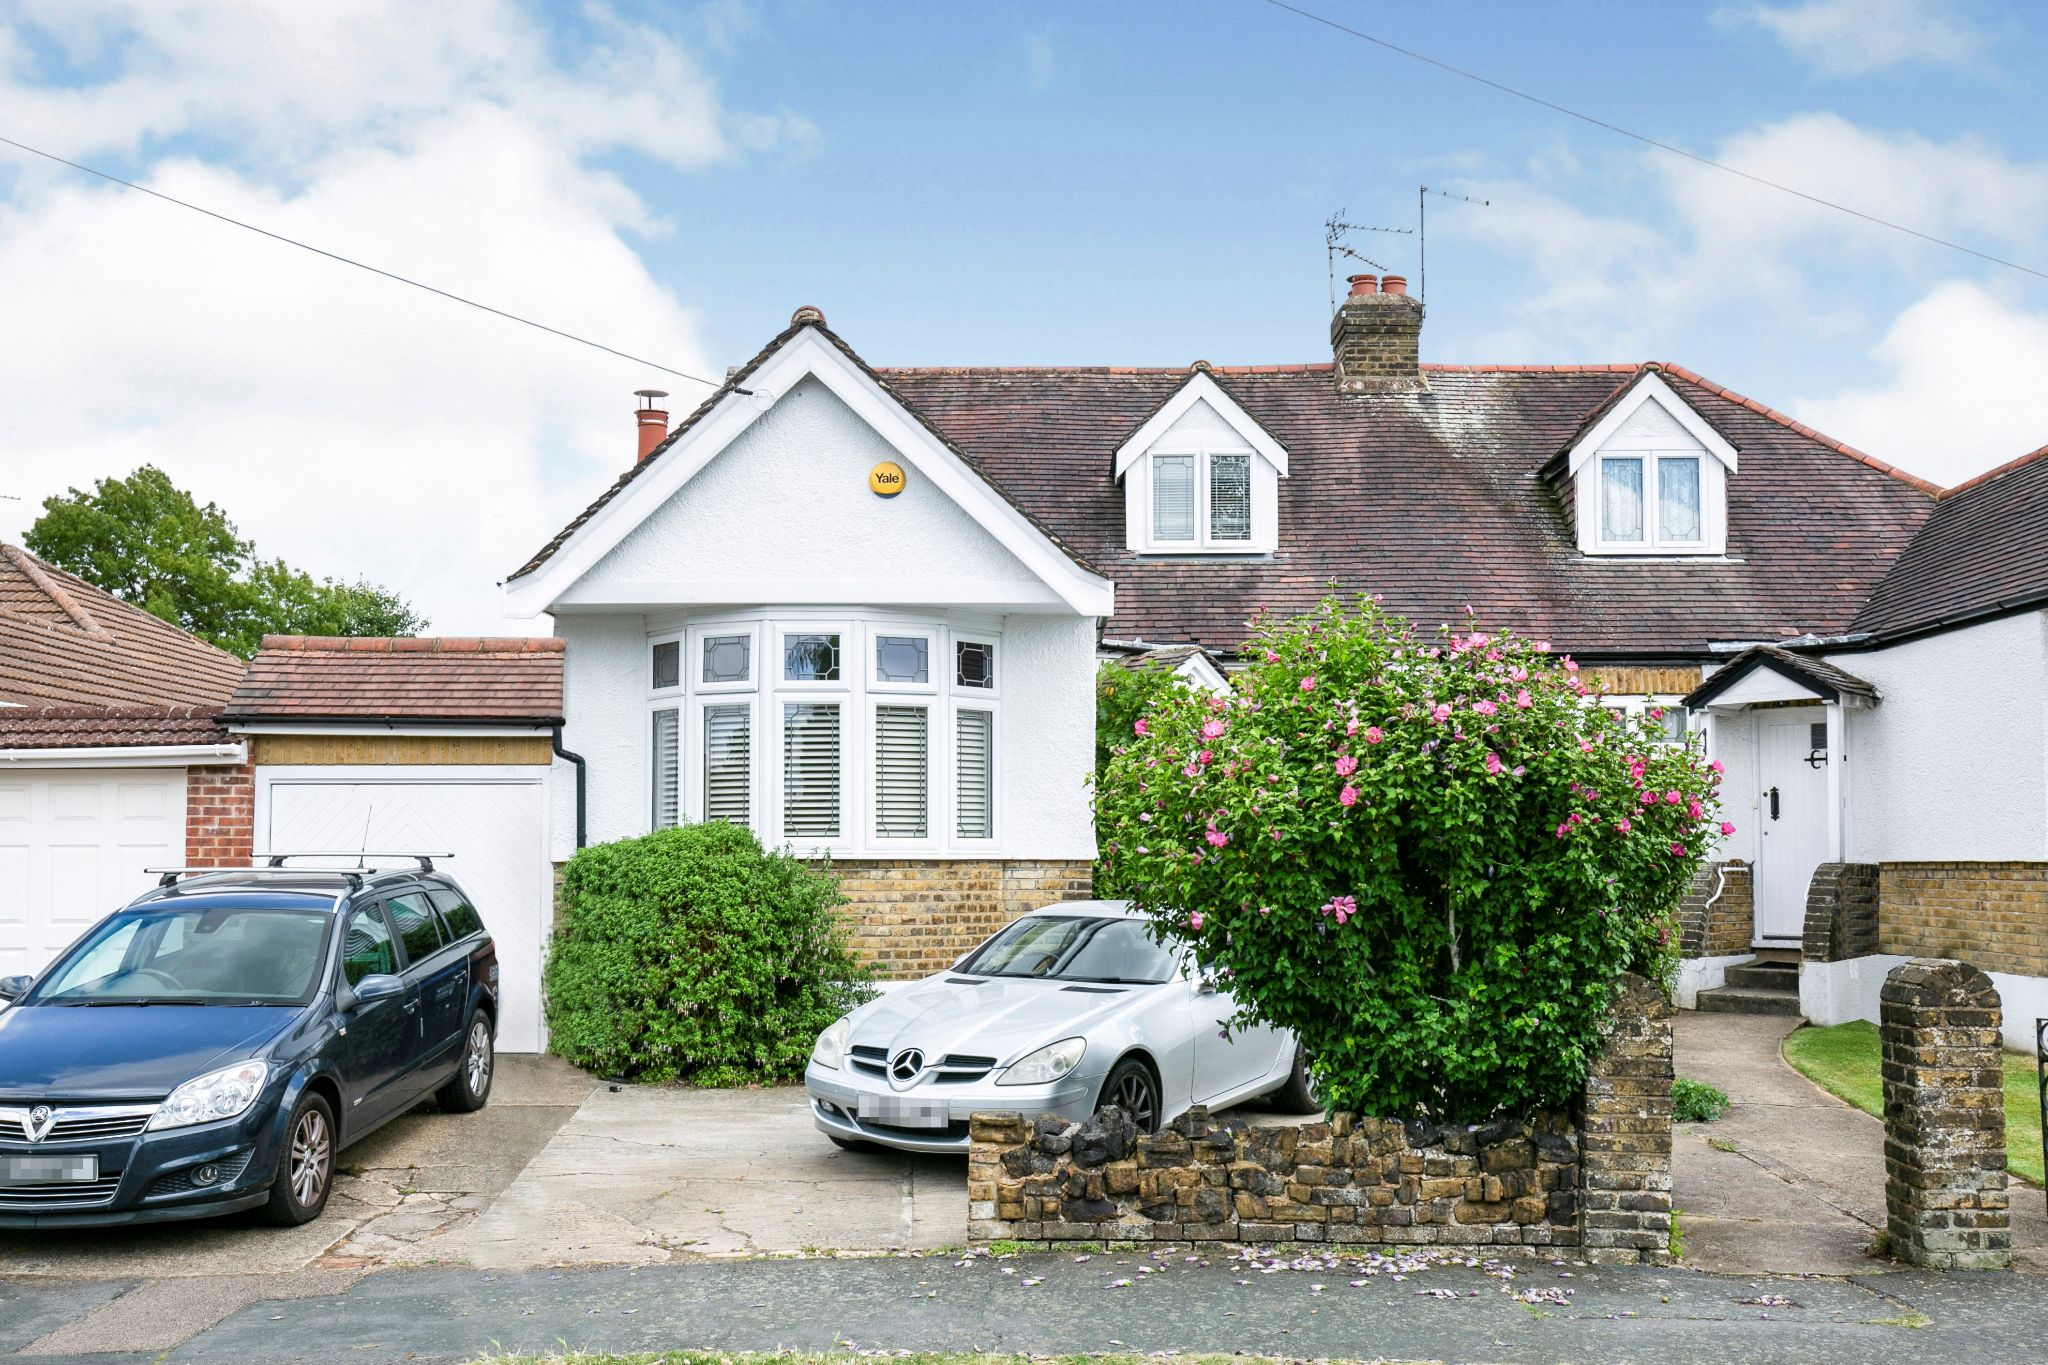 4 bedroom semi-detached bungalow For Sale in Brookmans Park - Property photograph